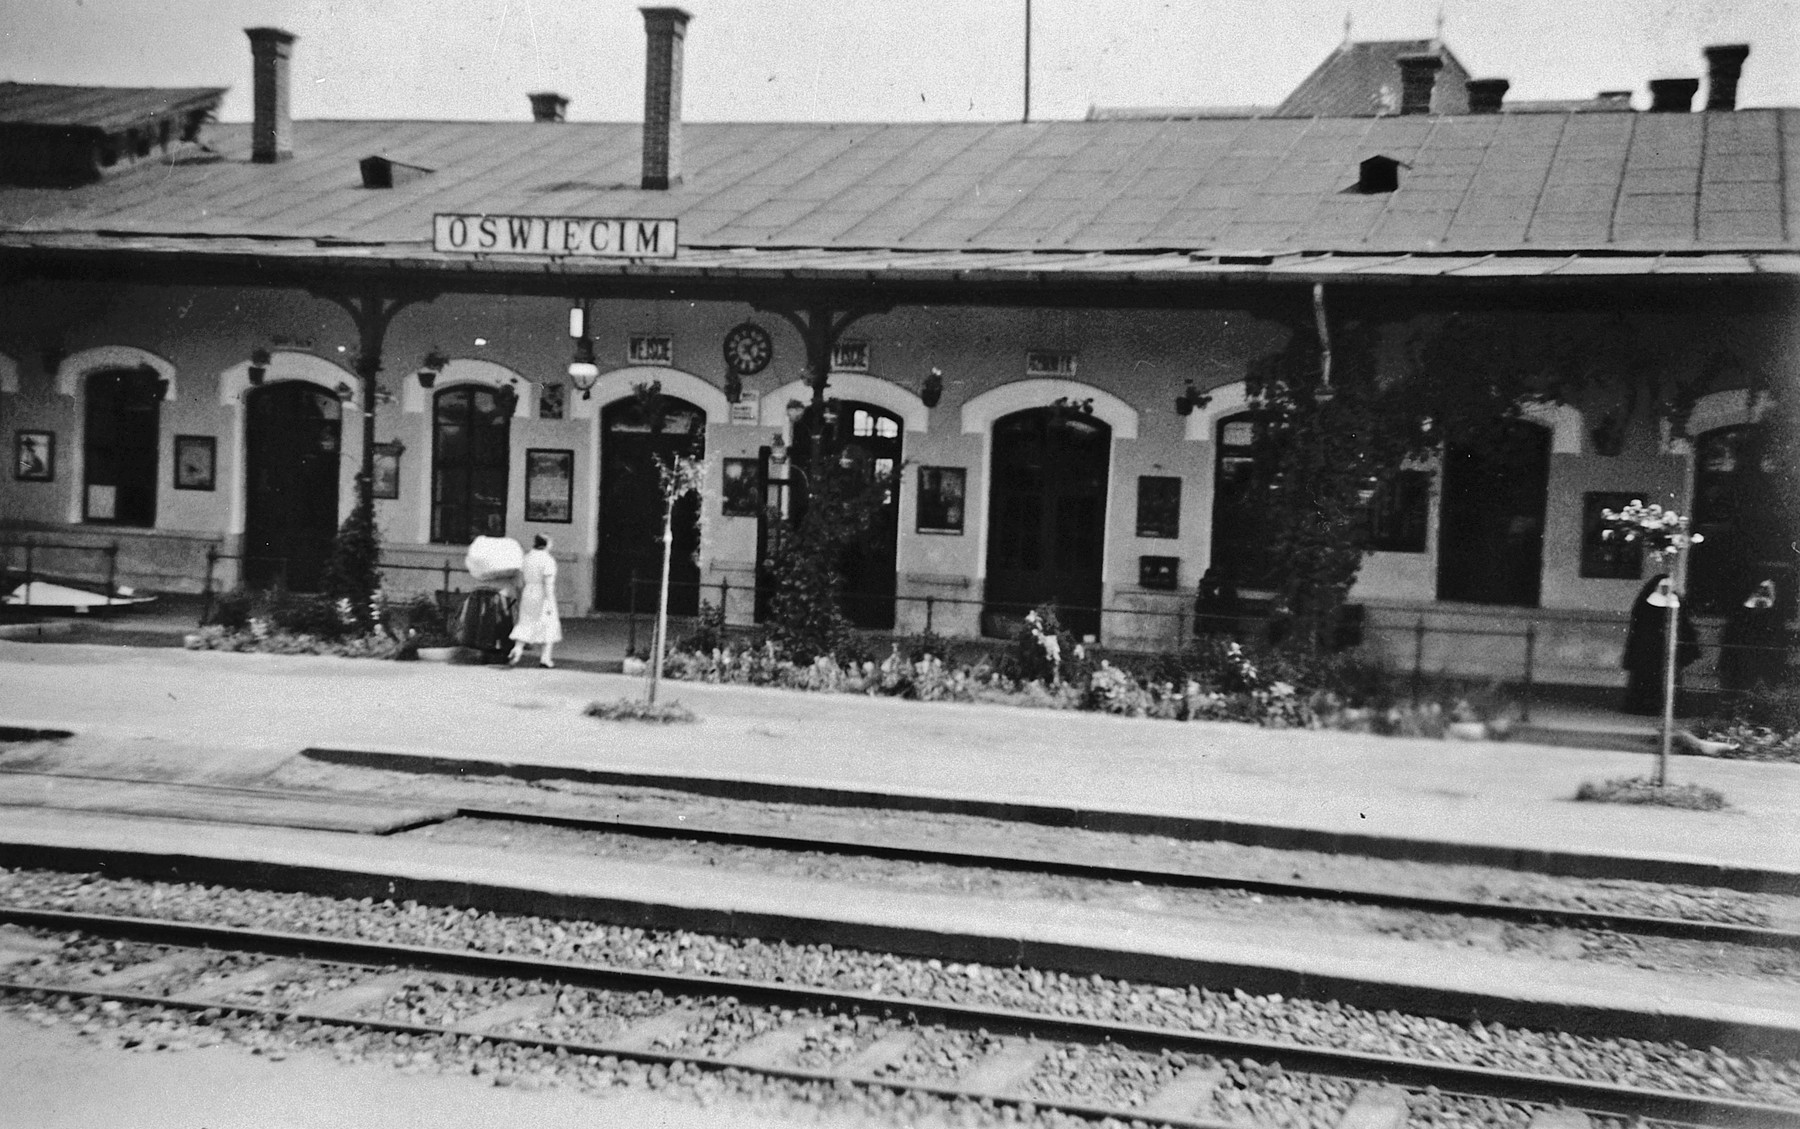 View of the train station in Oswiecim (Auschwitz), Poland before the war.